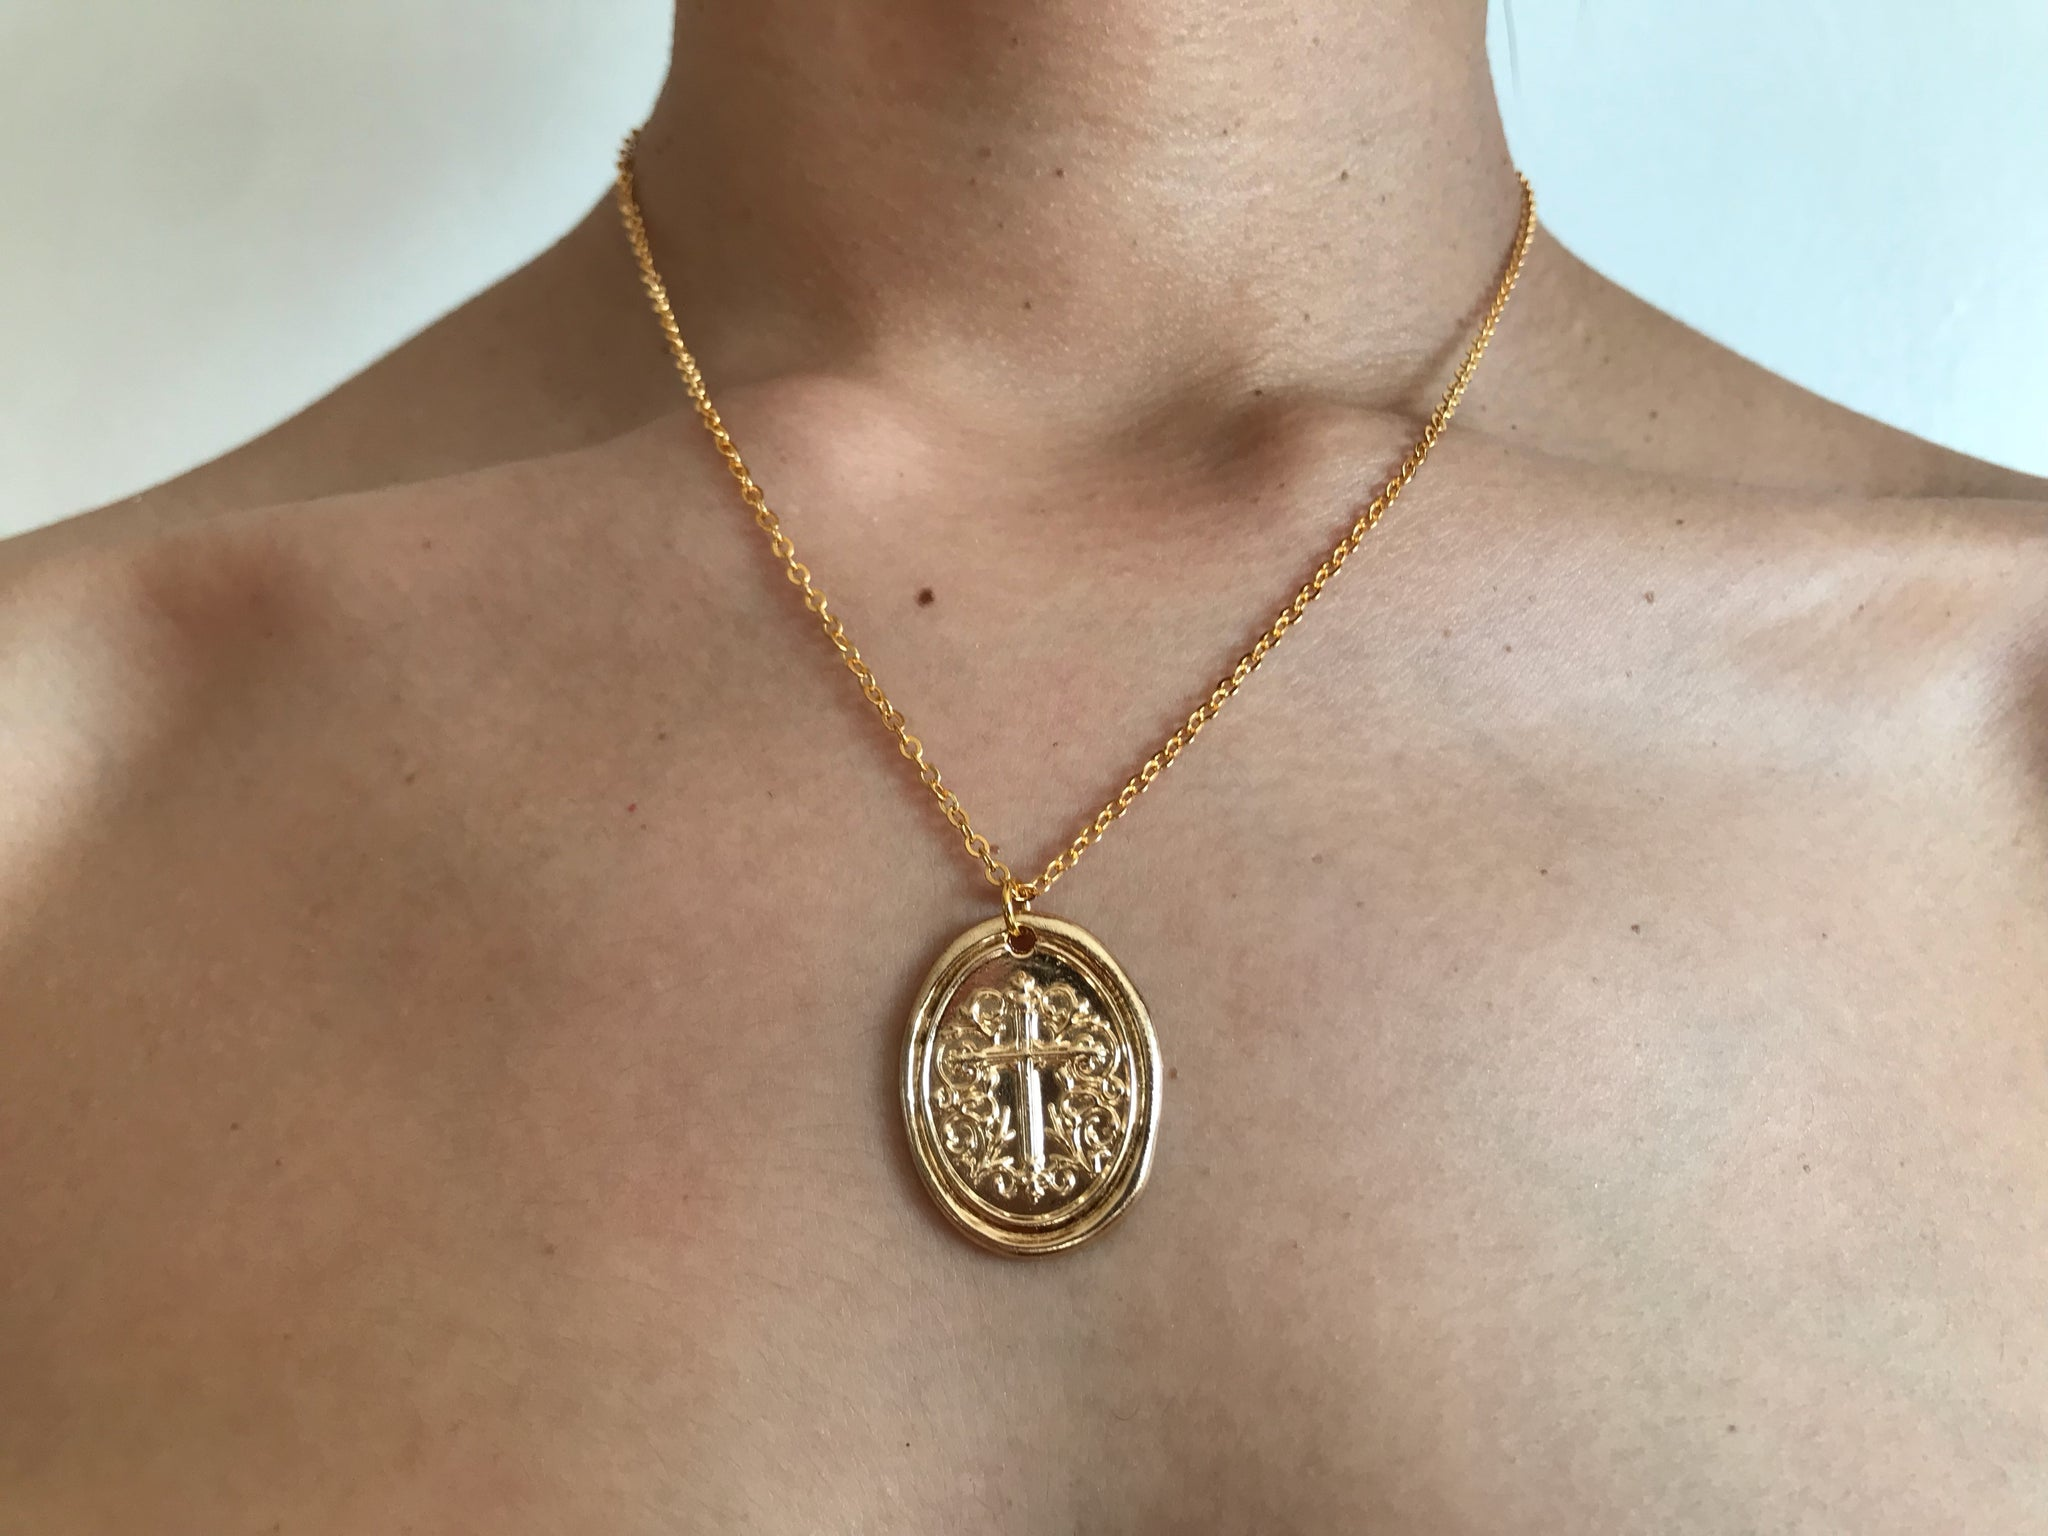 Cross coin charm necklace, cross coin necklace, cross jewelry cross stamp necklace, wax stamp jewelry, wax stamp charm, horse shoe necklace, pearl necklace, gold neckalce